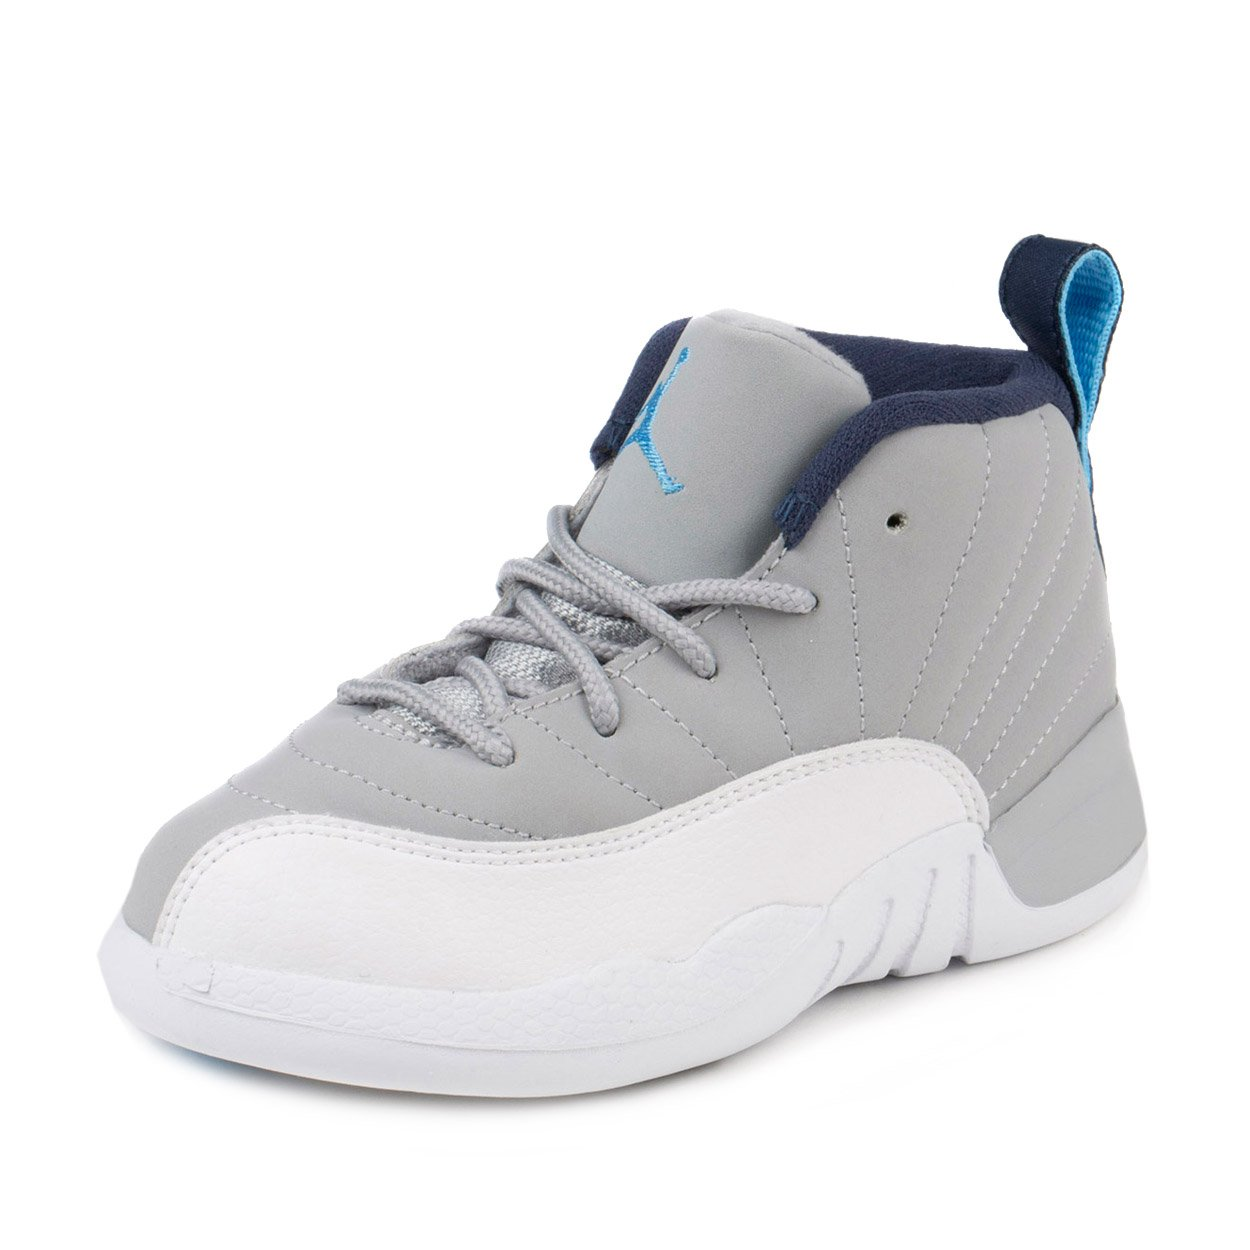 Nike Baby Boys Jordan 12 Retro BT ''Wolf Grey'' Wolf Grey/University Blue Leather Size 8C by NIKE